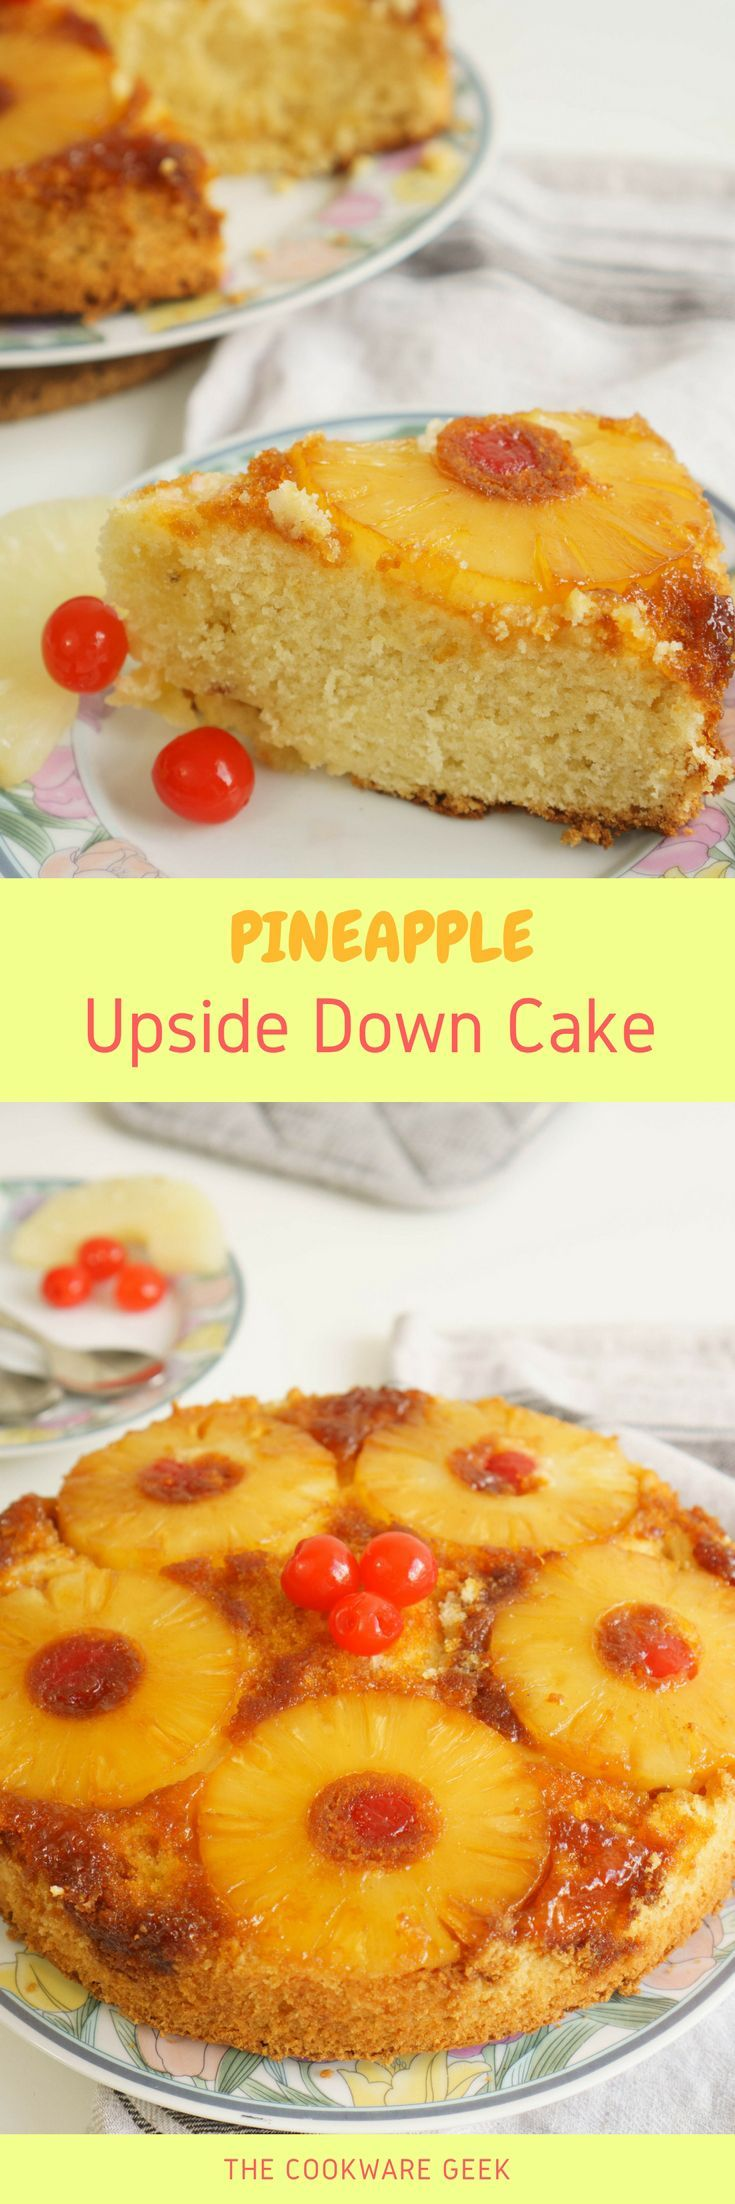 This pineapple upside down cake recipe has been in my family for a long time. It is one of our favorite cakes to eat at the family weekend reunion with a big cup of coffee.